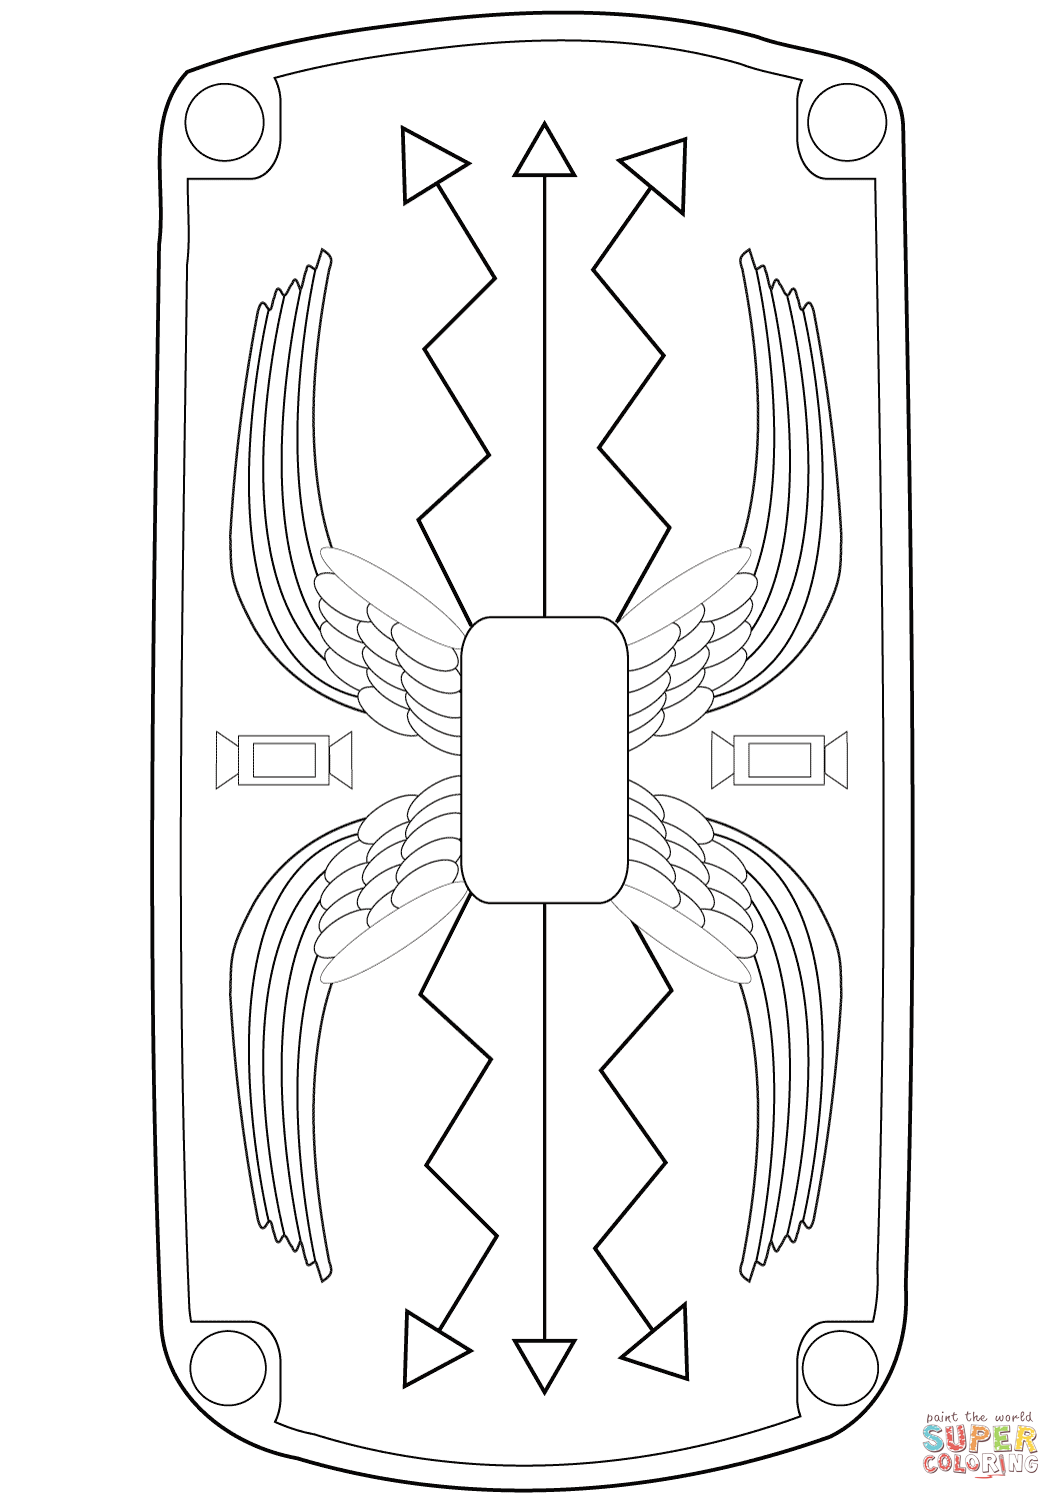 roman soldier diagram 2001 dodge caravan headlight wiring shield coloring page free printable pages